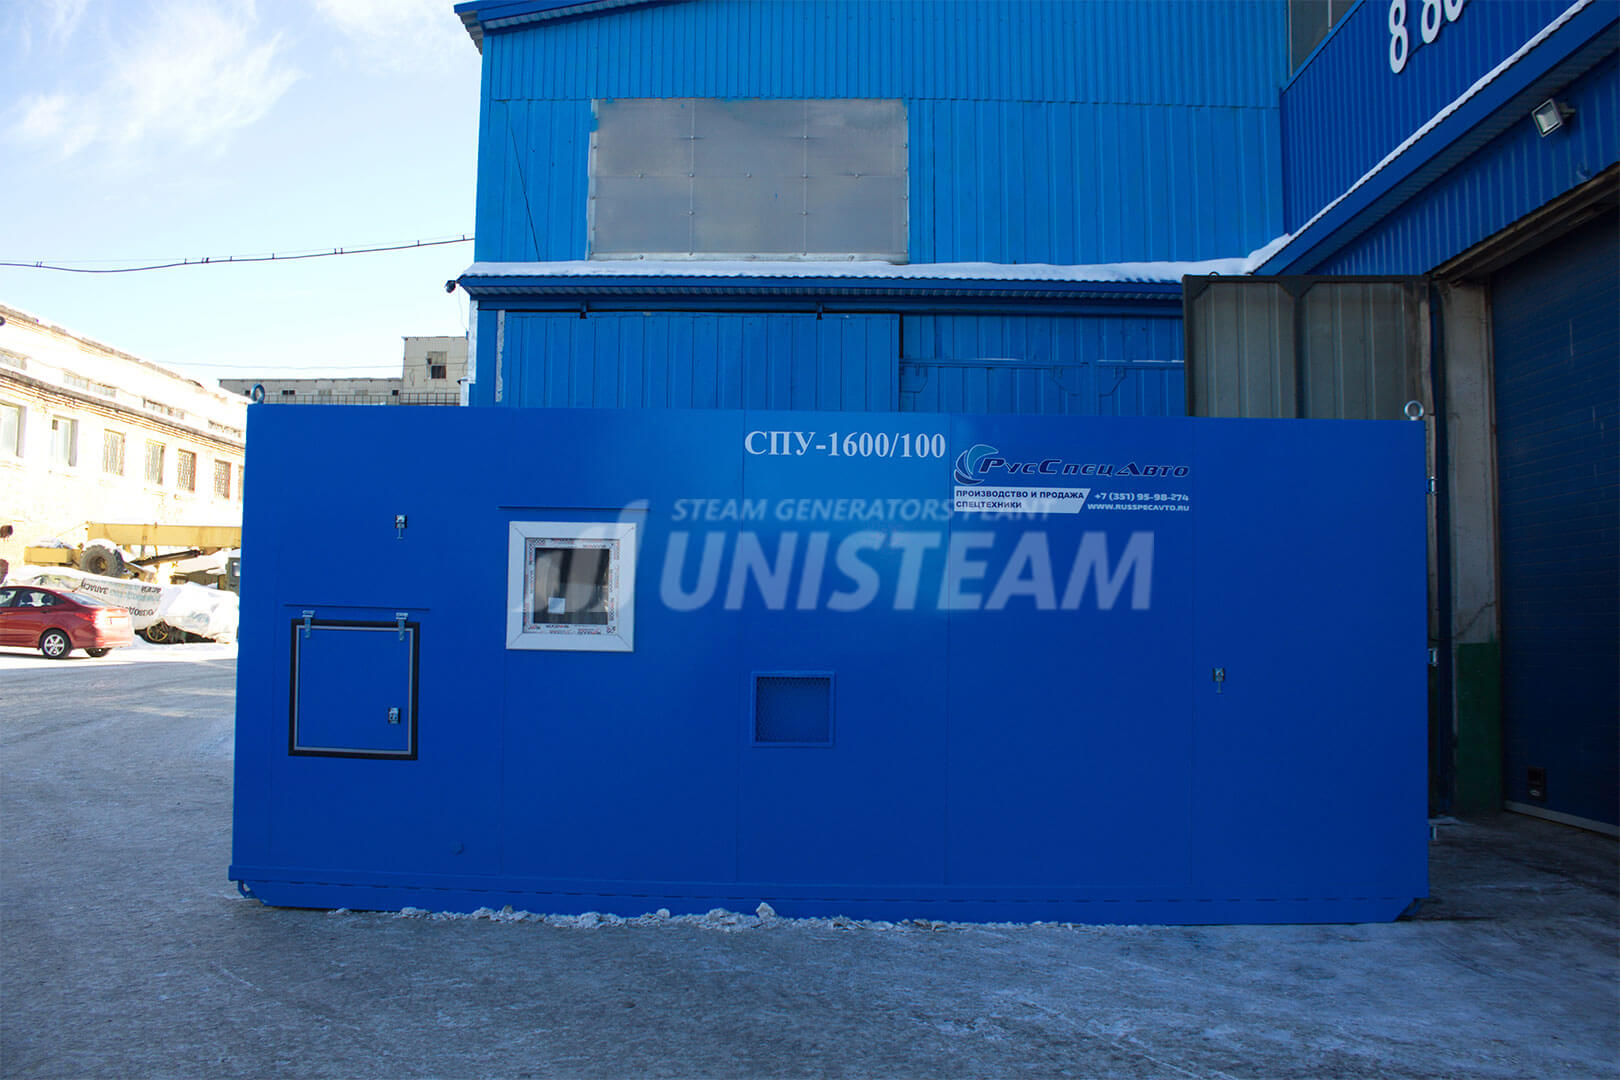 UNISTEAM-S 2500/160 steam boiler house for oil extraction, heating, cleaning, warming up, hot water